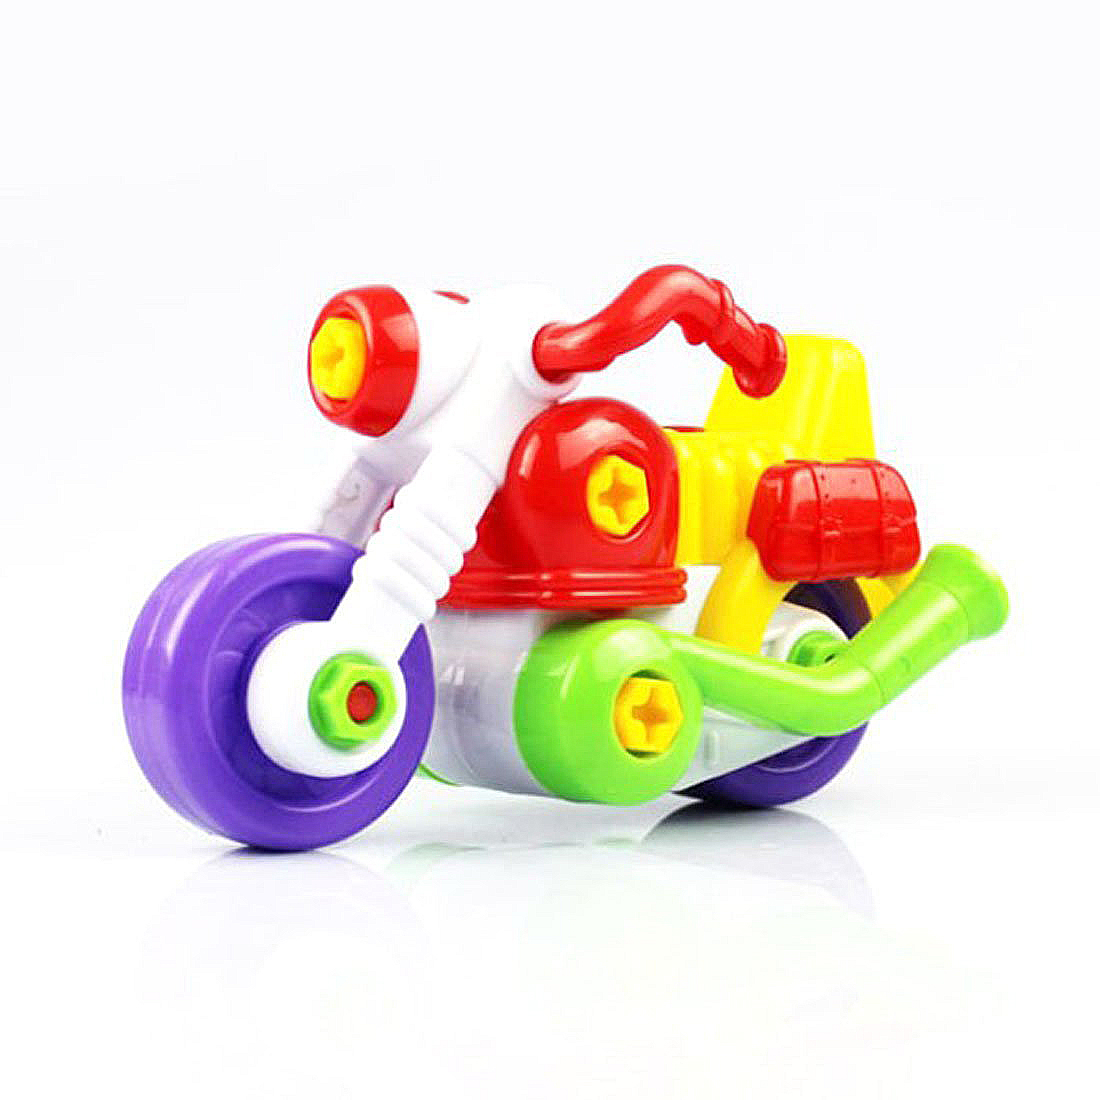 Kids Child Disassembly And Assembly Cartoon Motorcycle Toy With Tool Christmas Gift